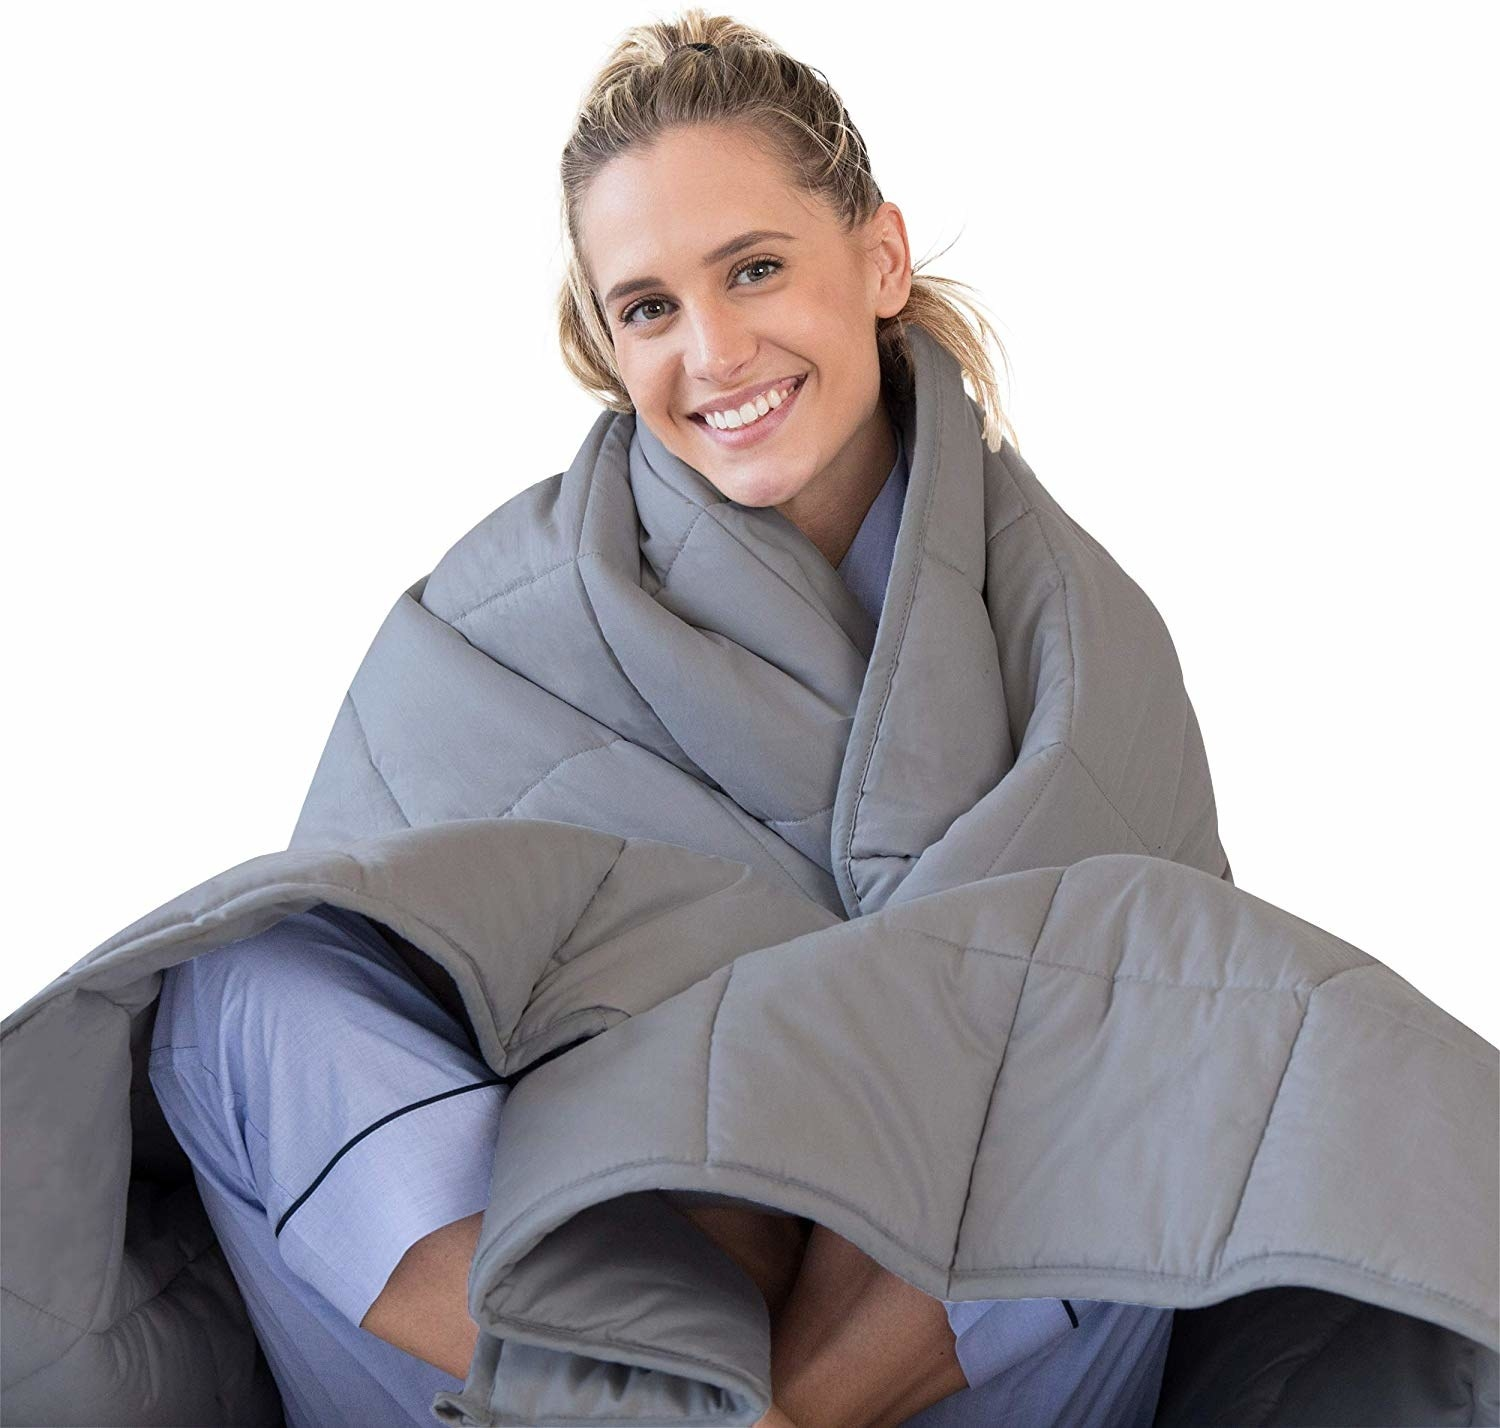 A model wearing the blanket around themselves